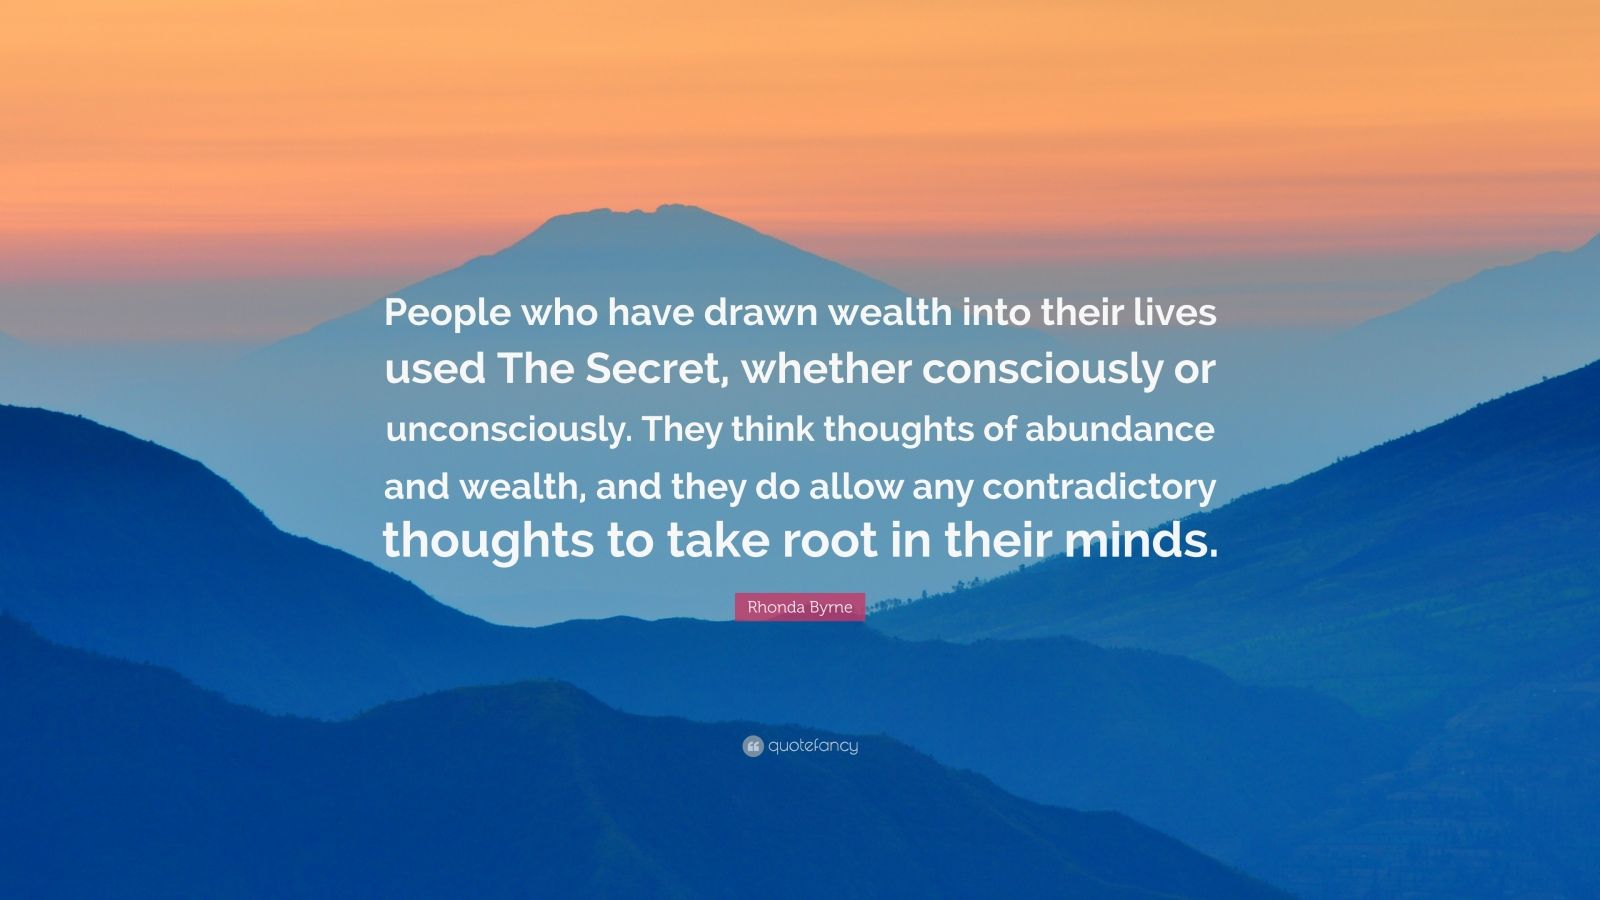 "Rhonda Byrne Quote: ""People who have drawn wealth into their lives used The Secret, whether consciously or unconsciously. They think thoughts of abundance and wealth, and they do allow any contradictory thoughts to take root in their minds."""